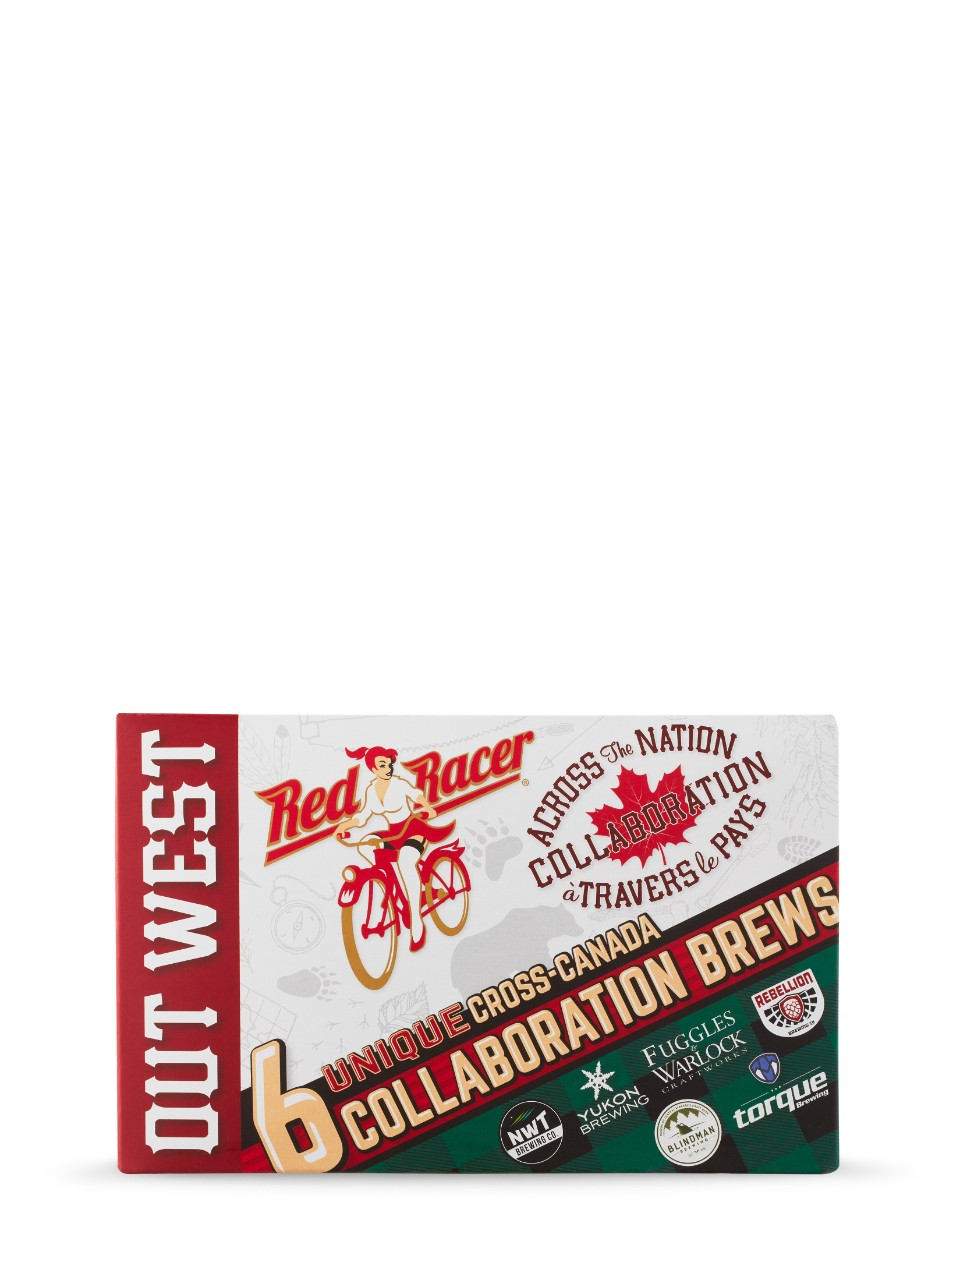 Image for Red Racer Across the Nation Collaboration West from LCBO